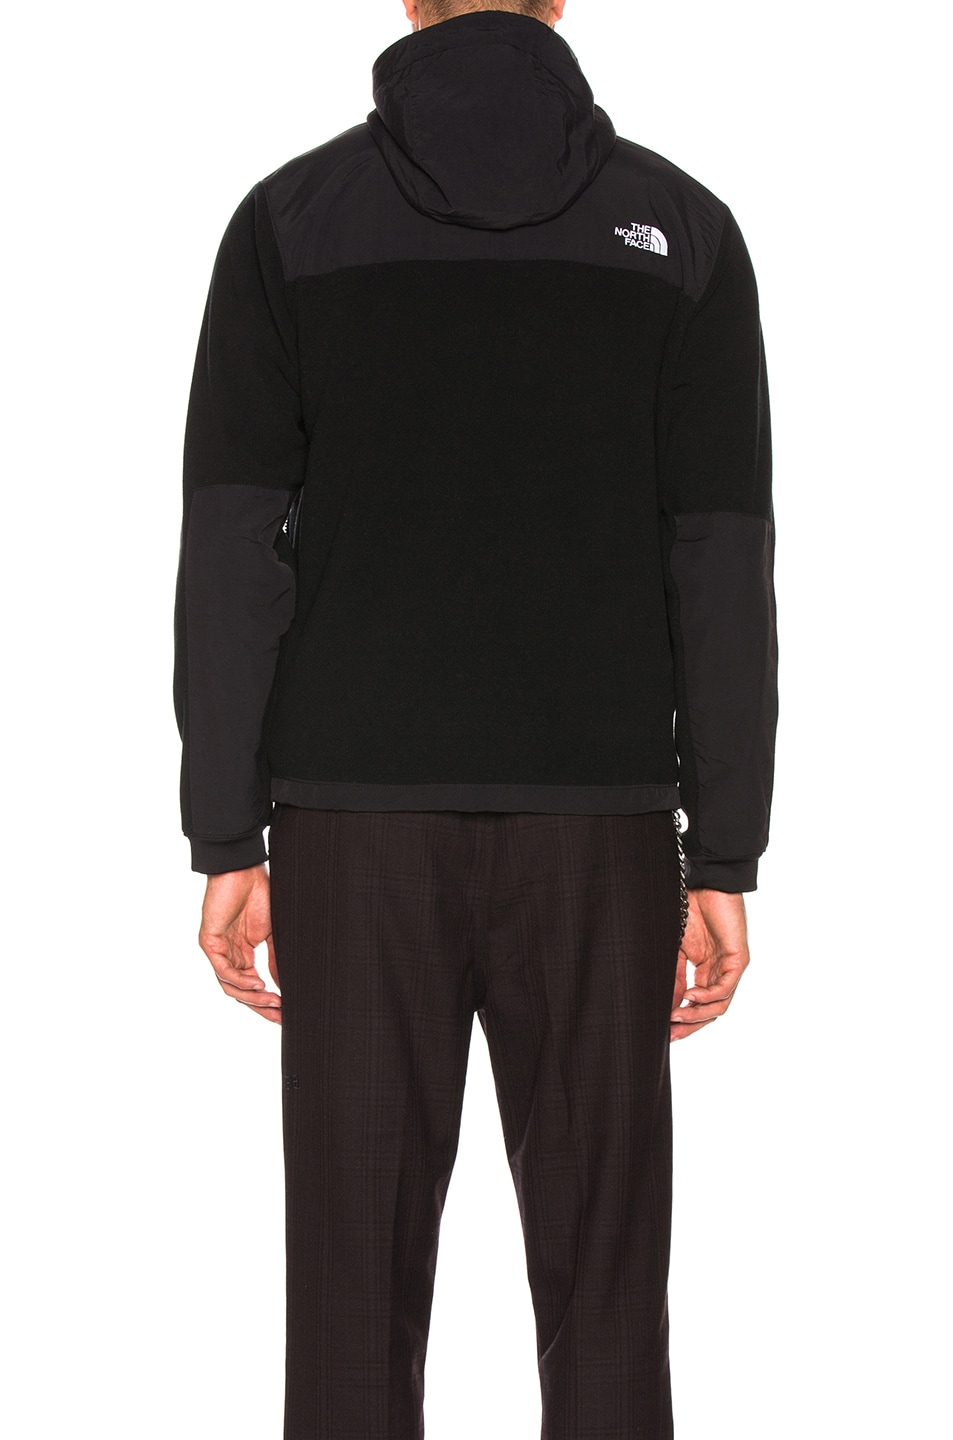 Image 4 of The North Face Denali 2 Hoodie in TNF Black